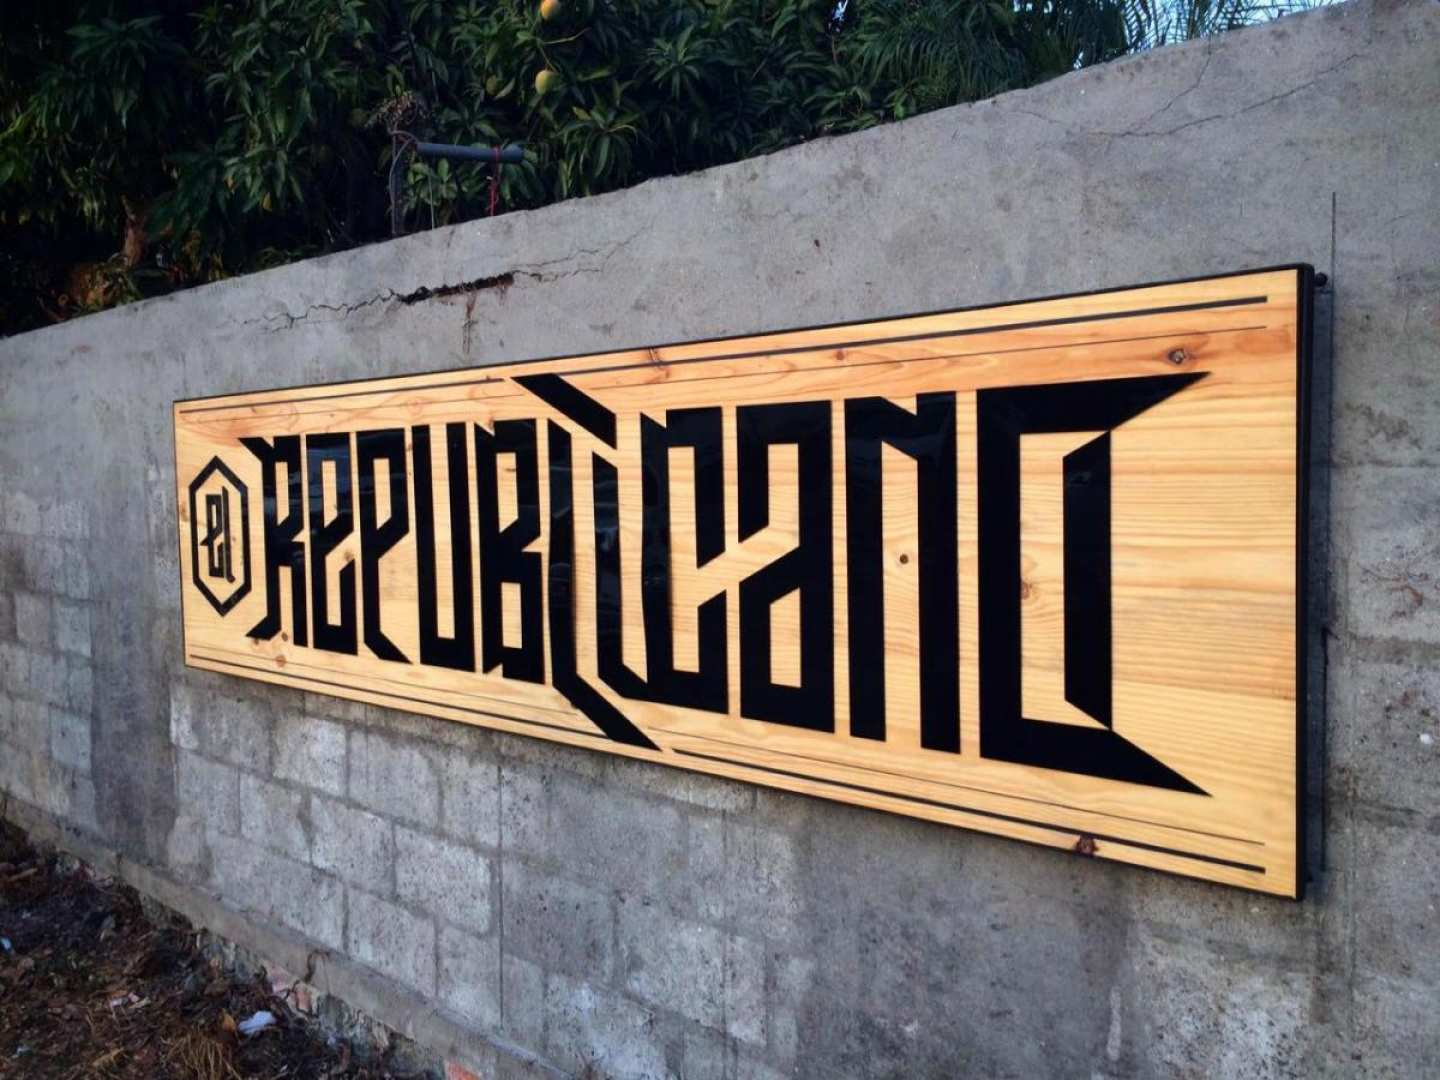 El Republicano